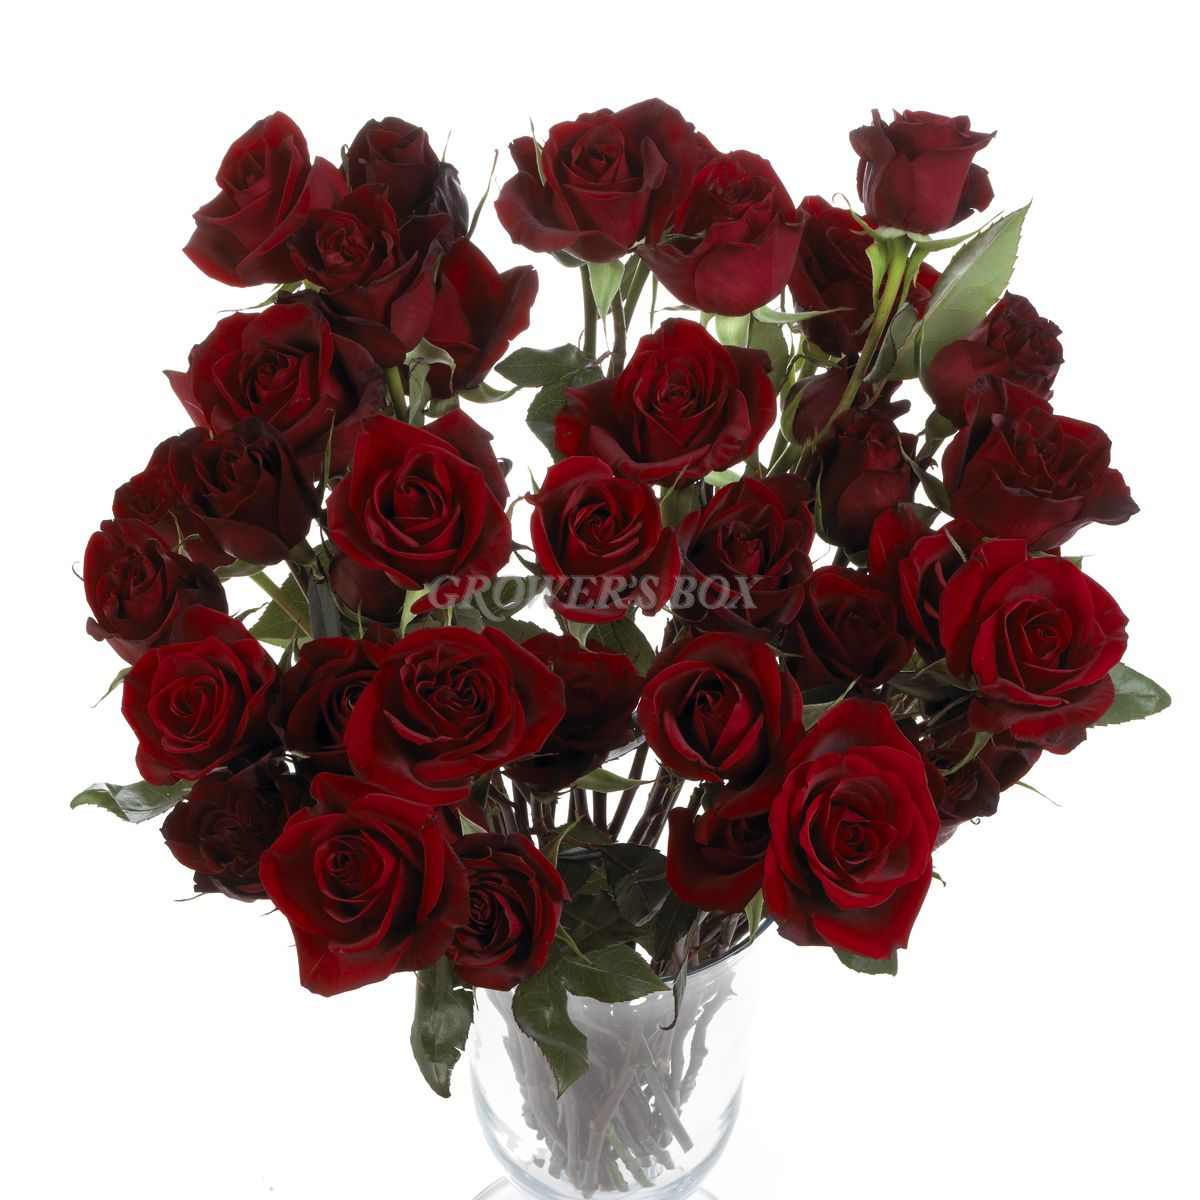 Black Magic Roses are sought after by name for their unique black/velvety red coloration. Black Magic Roses are classy flowers and are widely used in fundraising efforts. Selling fresh cut flowers is a great way to generate revenues for clubs, churches, schools and other organizations. Visit www.GrowersBox.com for more information on fundraising with flowers.